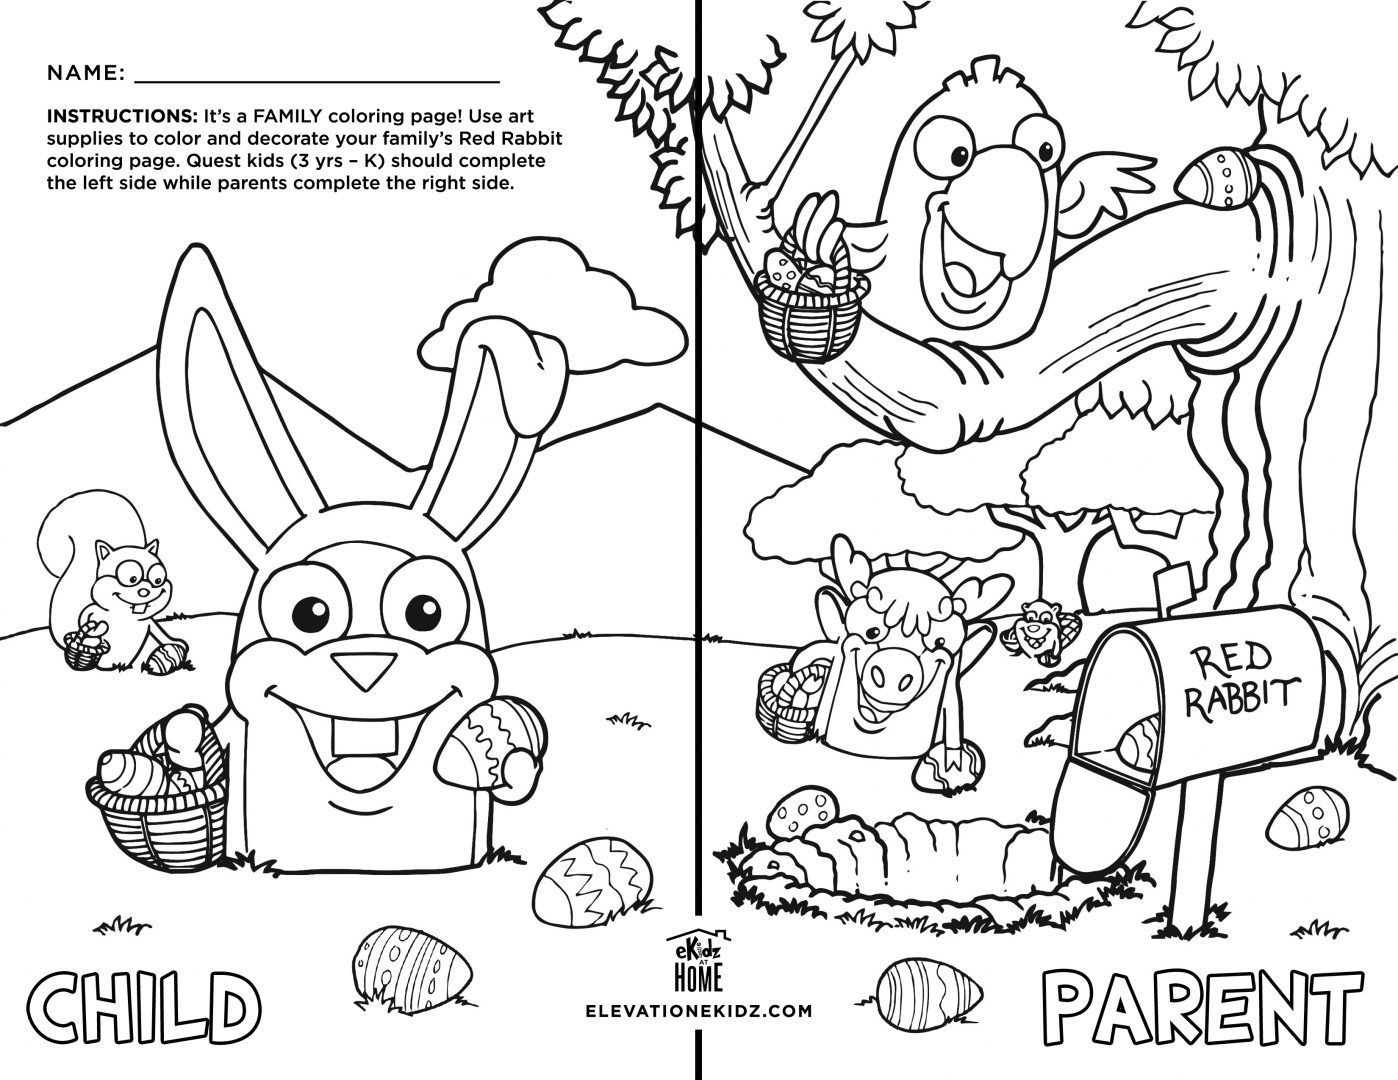 Elevation Church Coloring Page - Master Coloring Pages